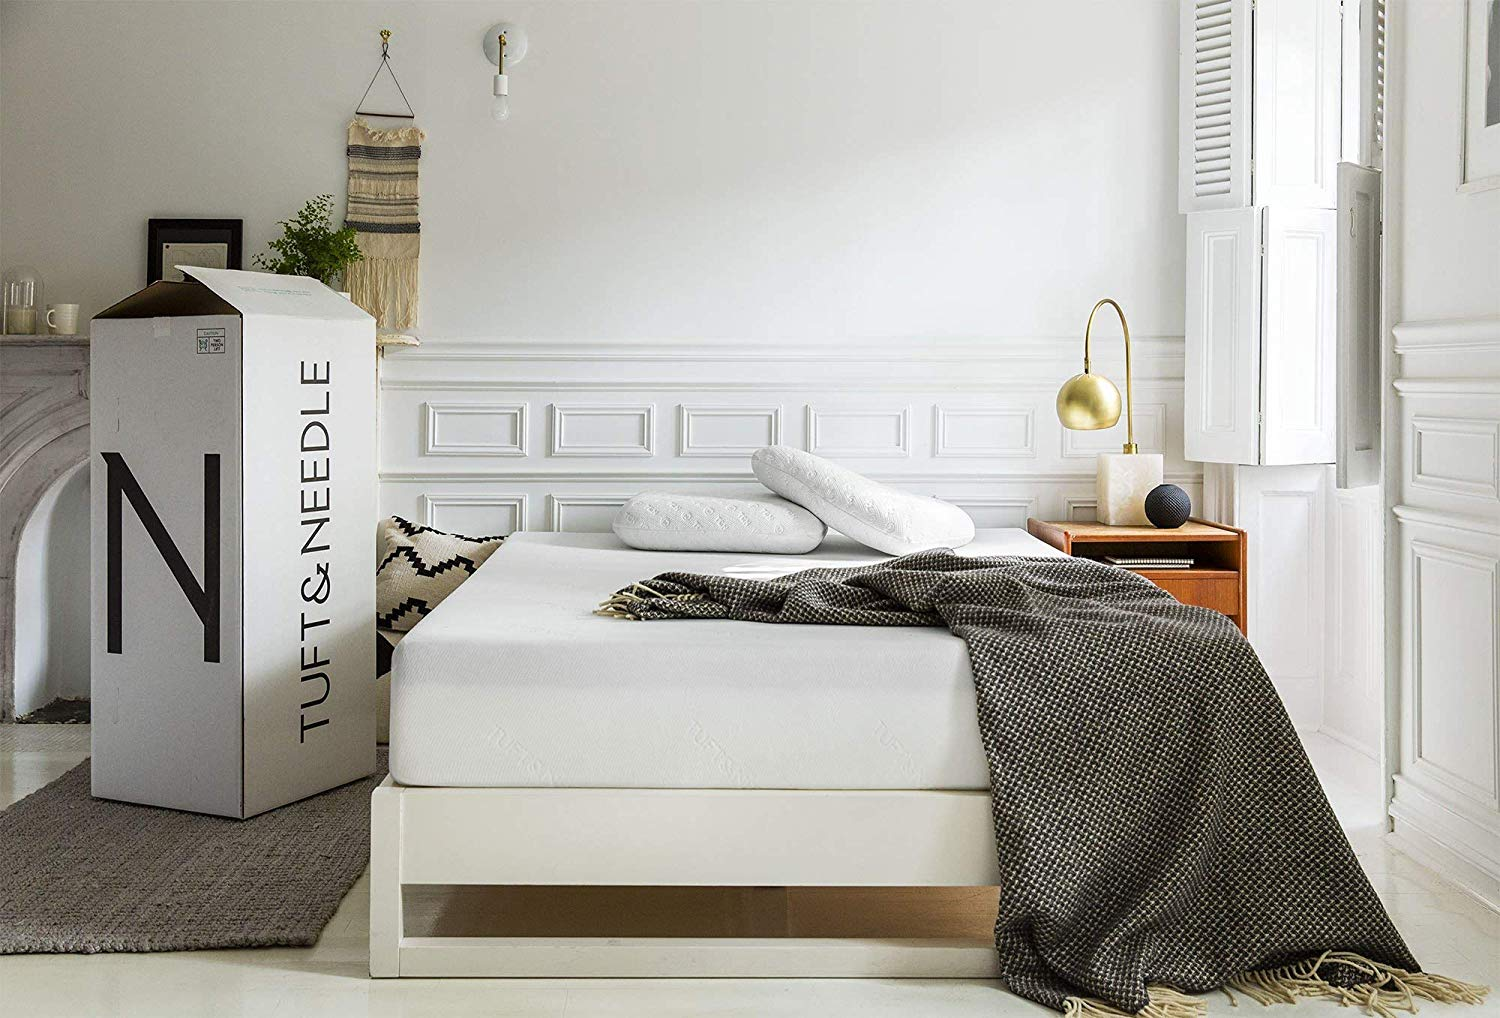 Assembly Tuft & Needle Queen Mattress